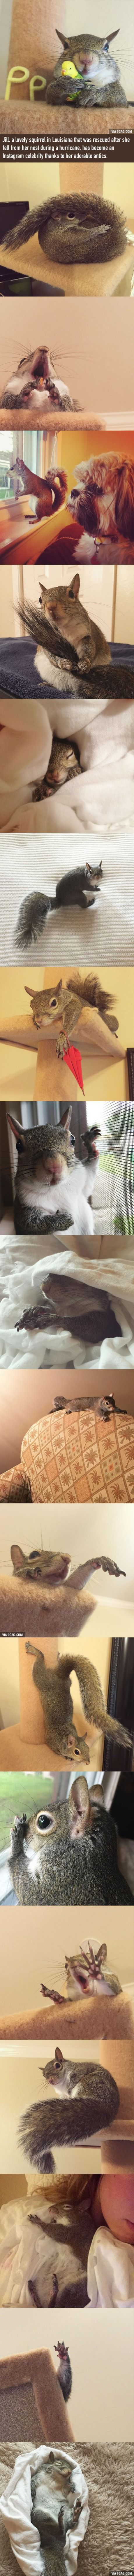 Jill The Squirrel rescued after hurricane becomes family's cutest member